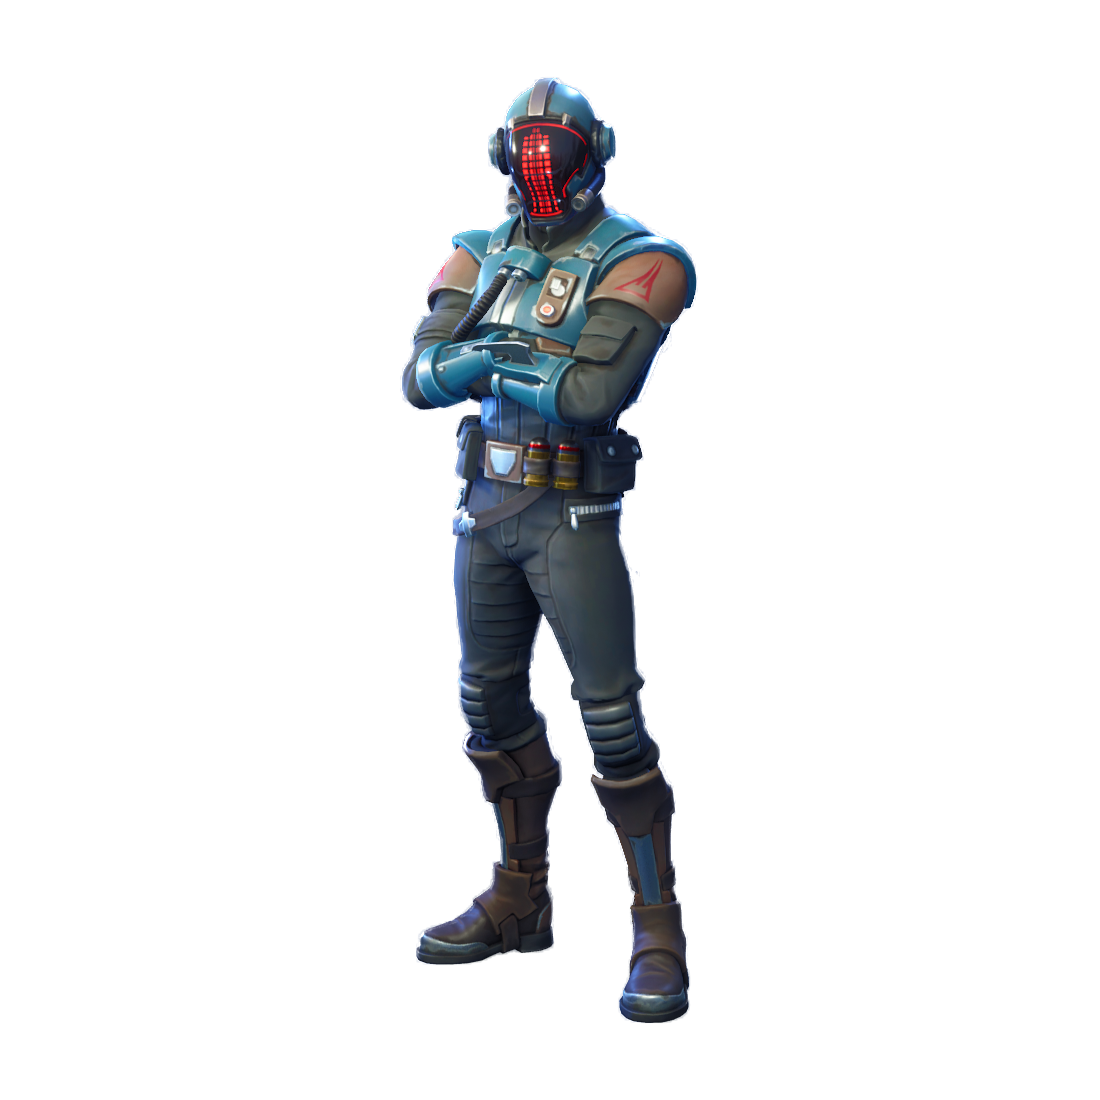 Fortnite The Visitor Png Image The Visitors Character Inspiration Fortnite